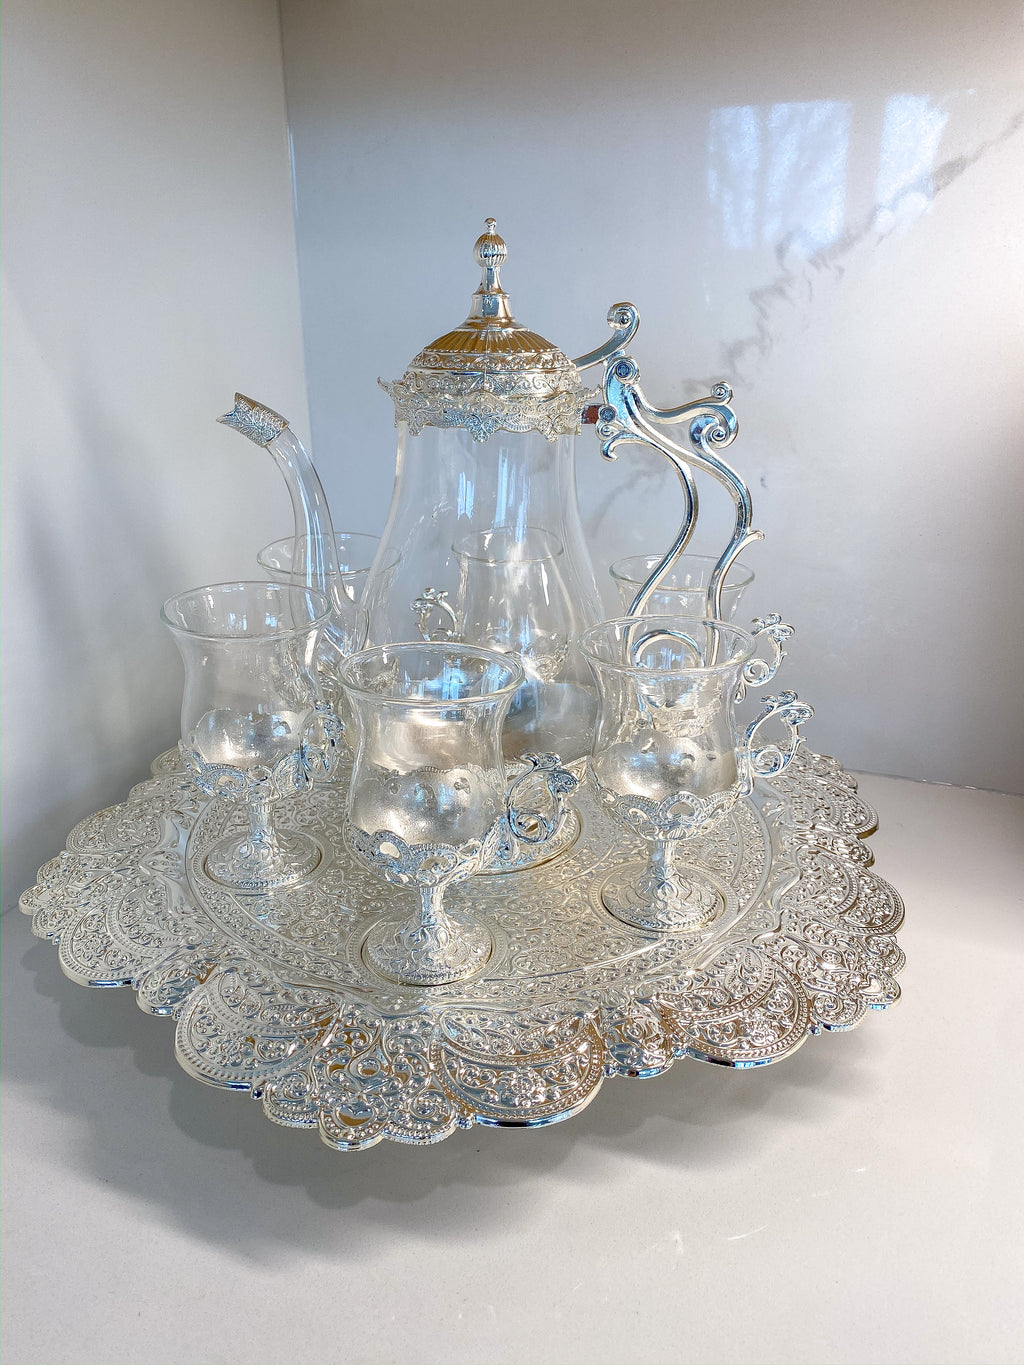 Silver and Glass Turkish Tea Set-Inspire Me! Home Decor